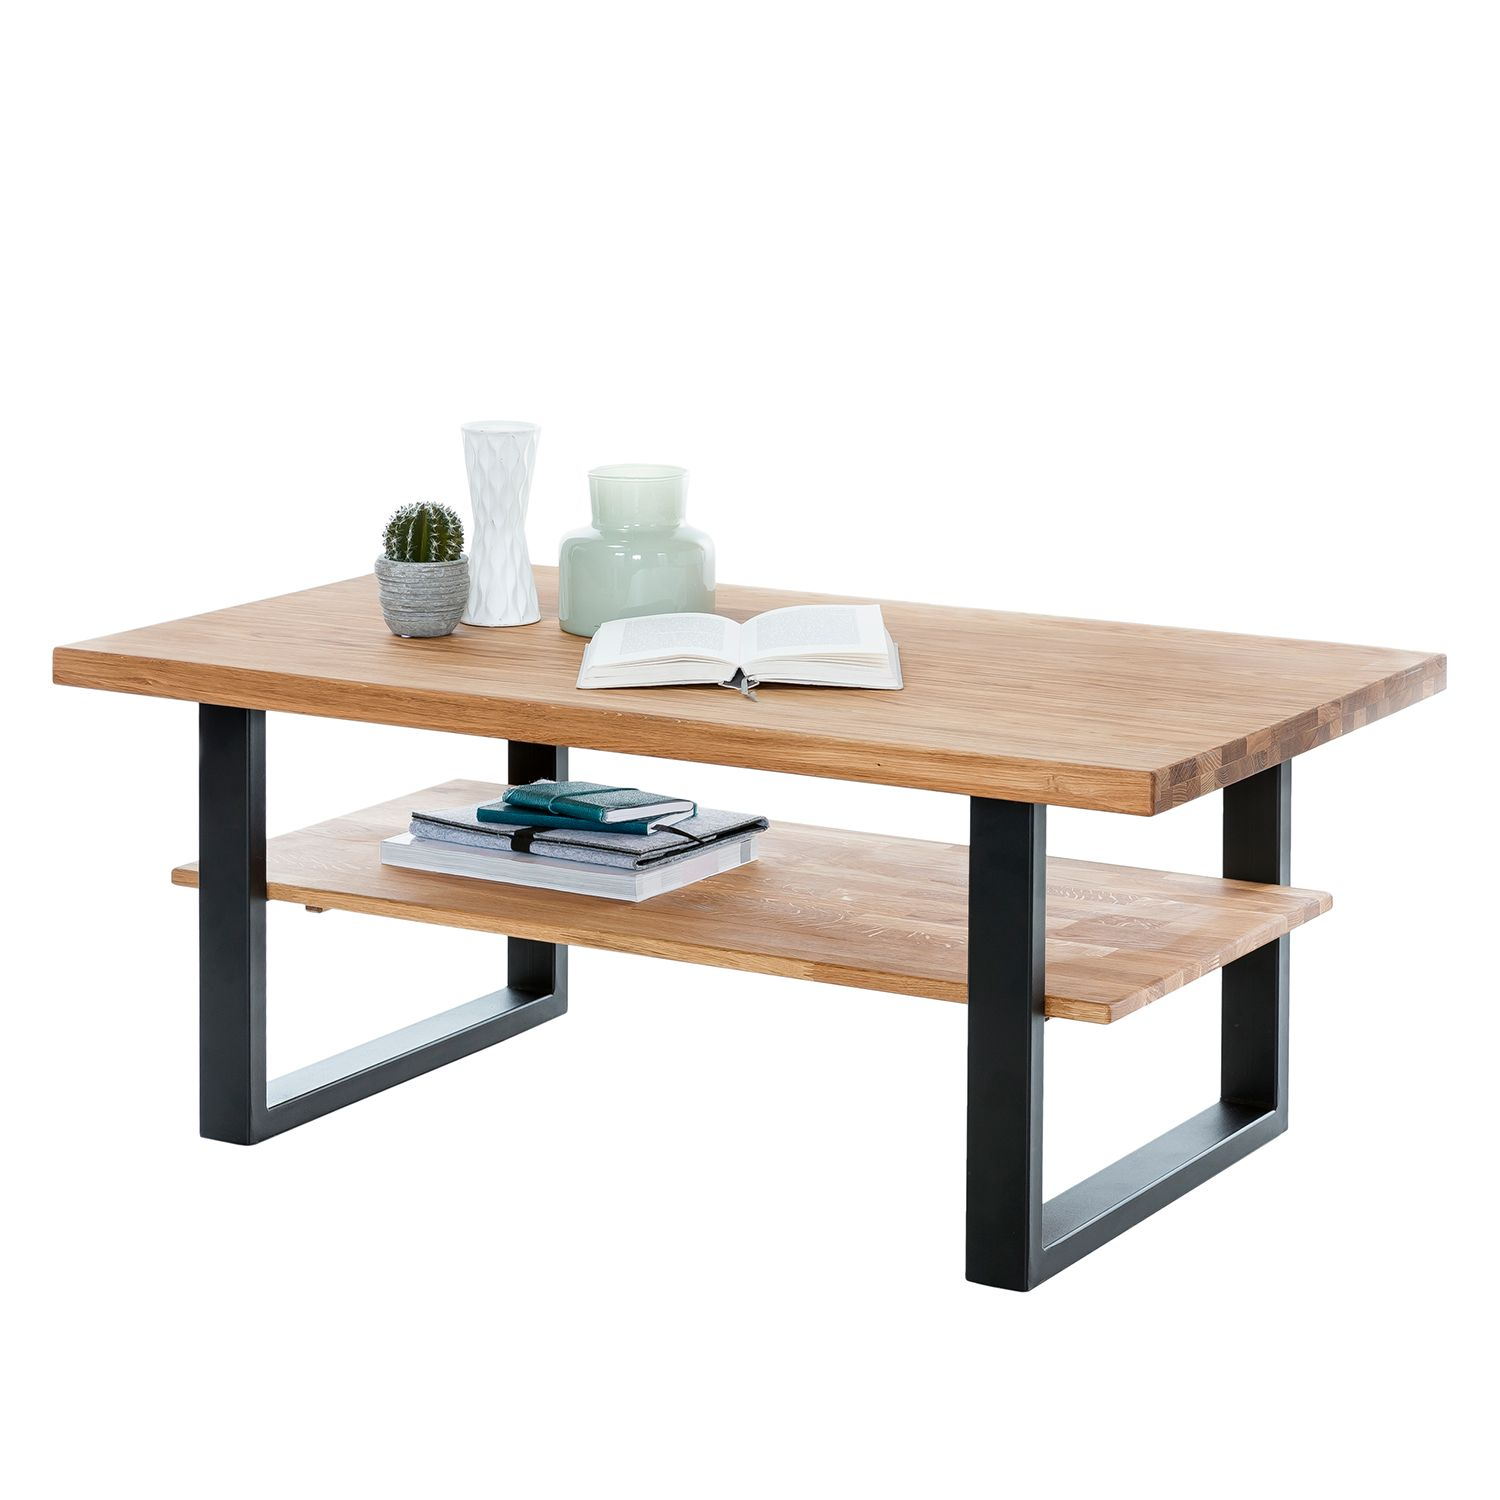 Table basse Loxton